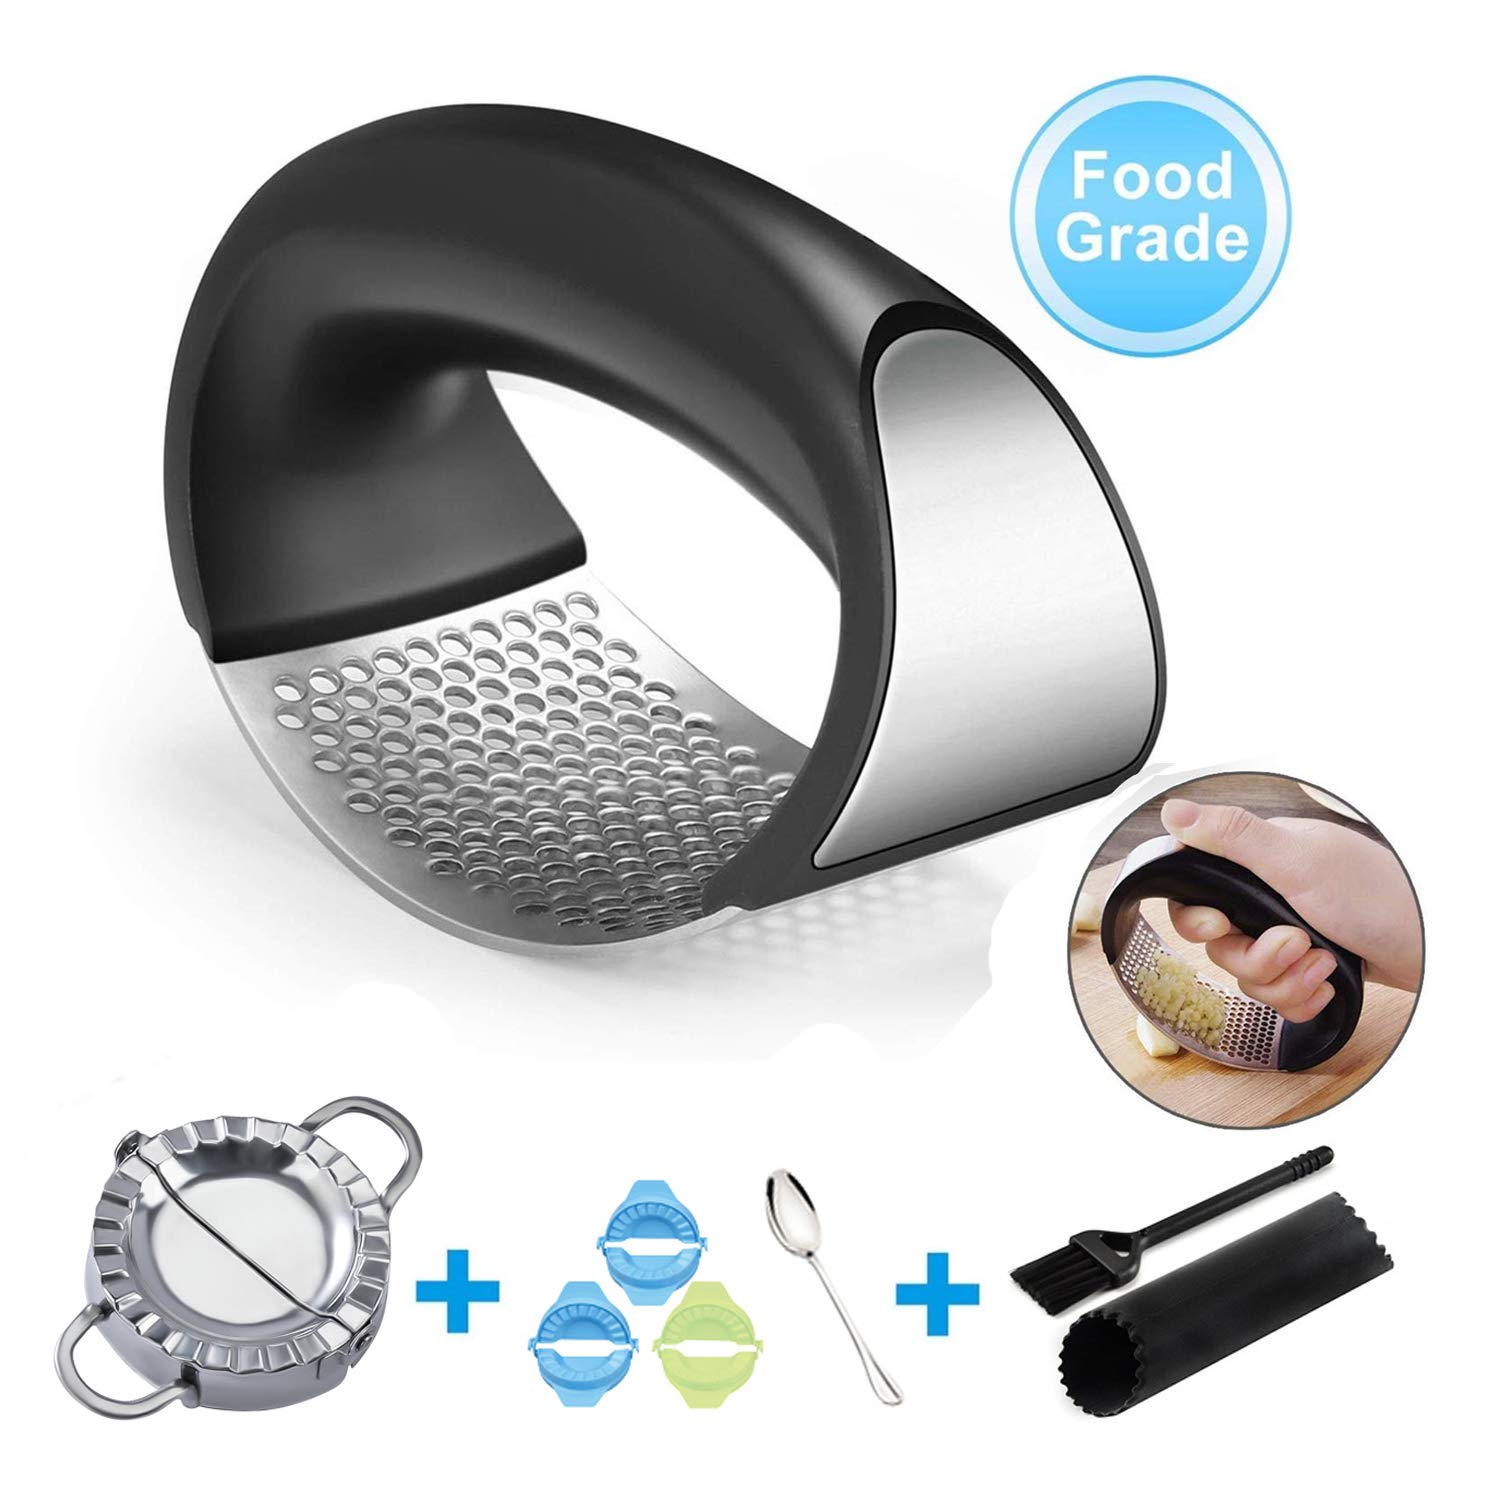 XYQC Garlic Press, Garlic Presses Rocker Crusher with Dumpling Maker Silicone Garlic Peeler and Garlic Cleaner Brush, Easy to Use and Clean by XYQC